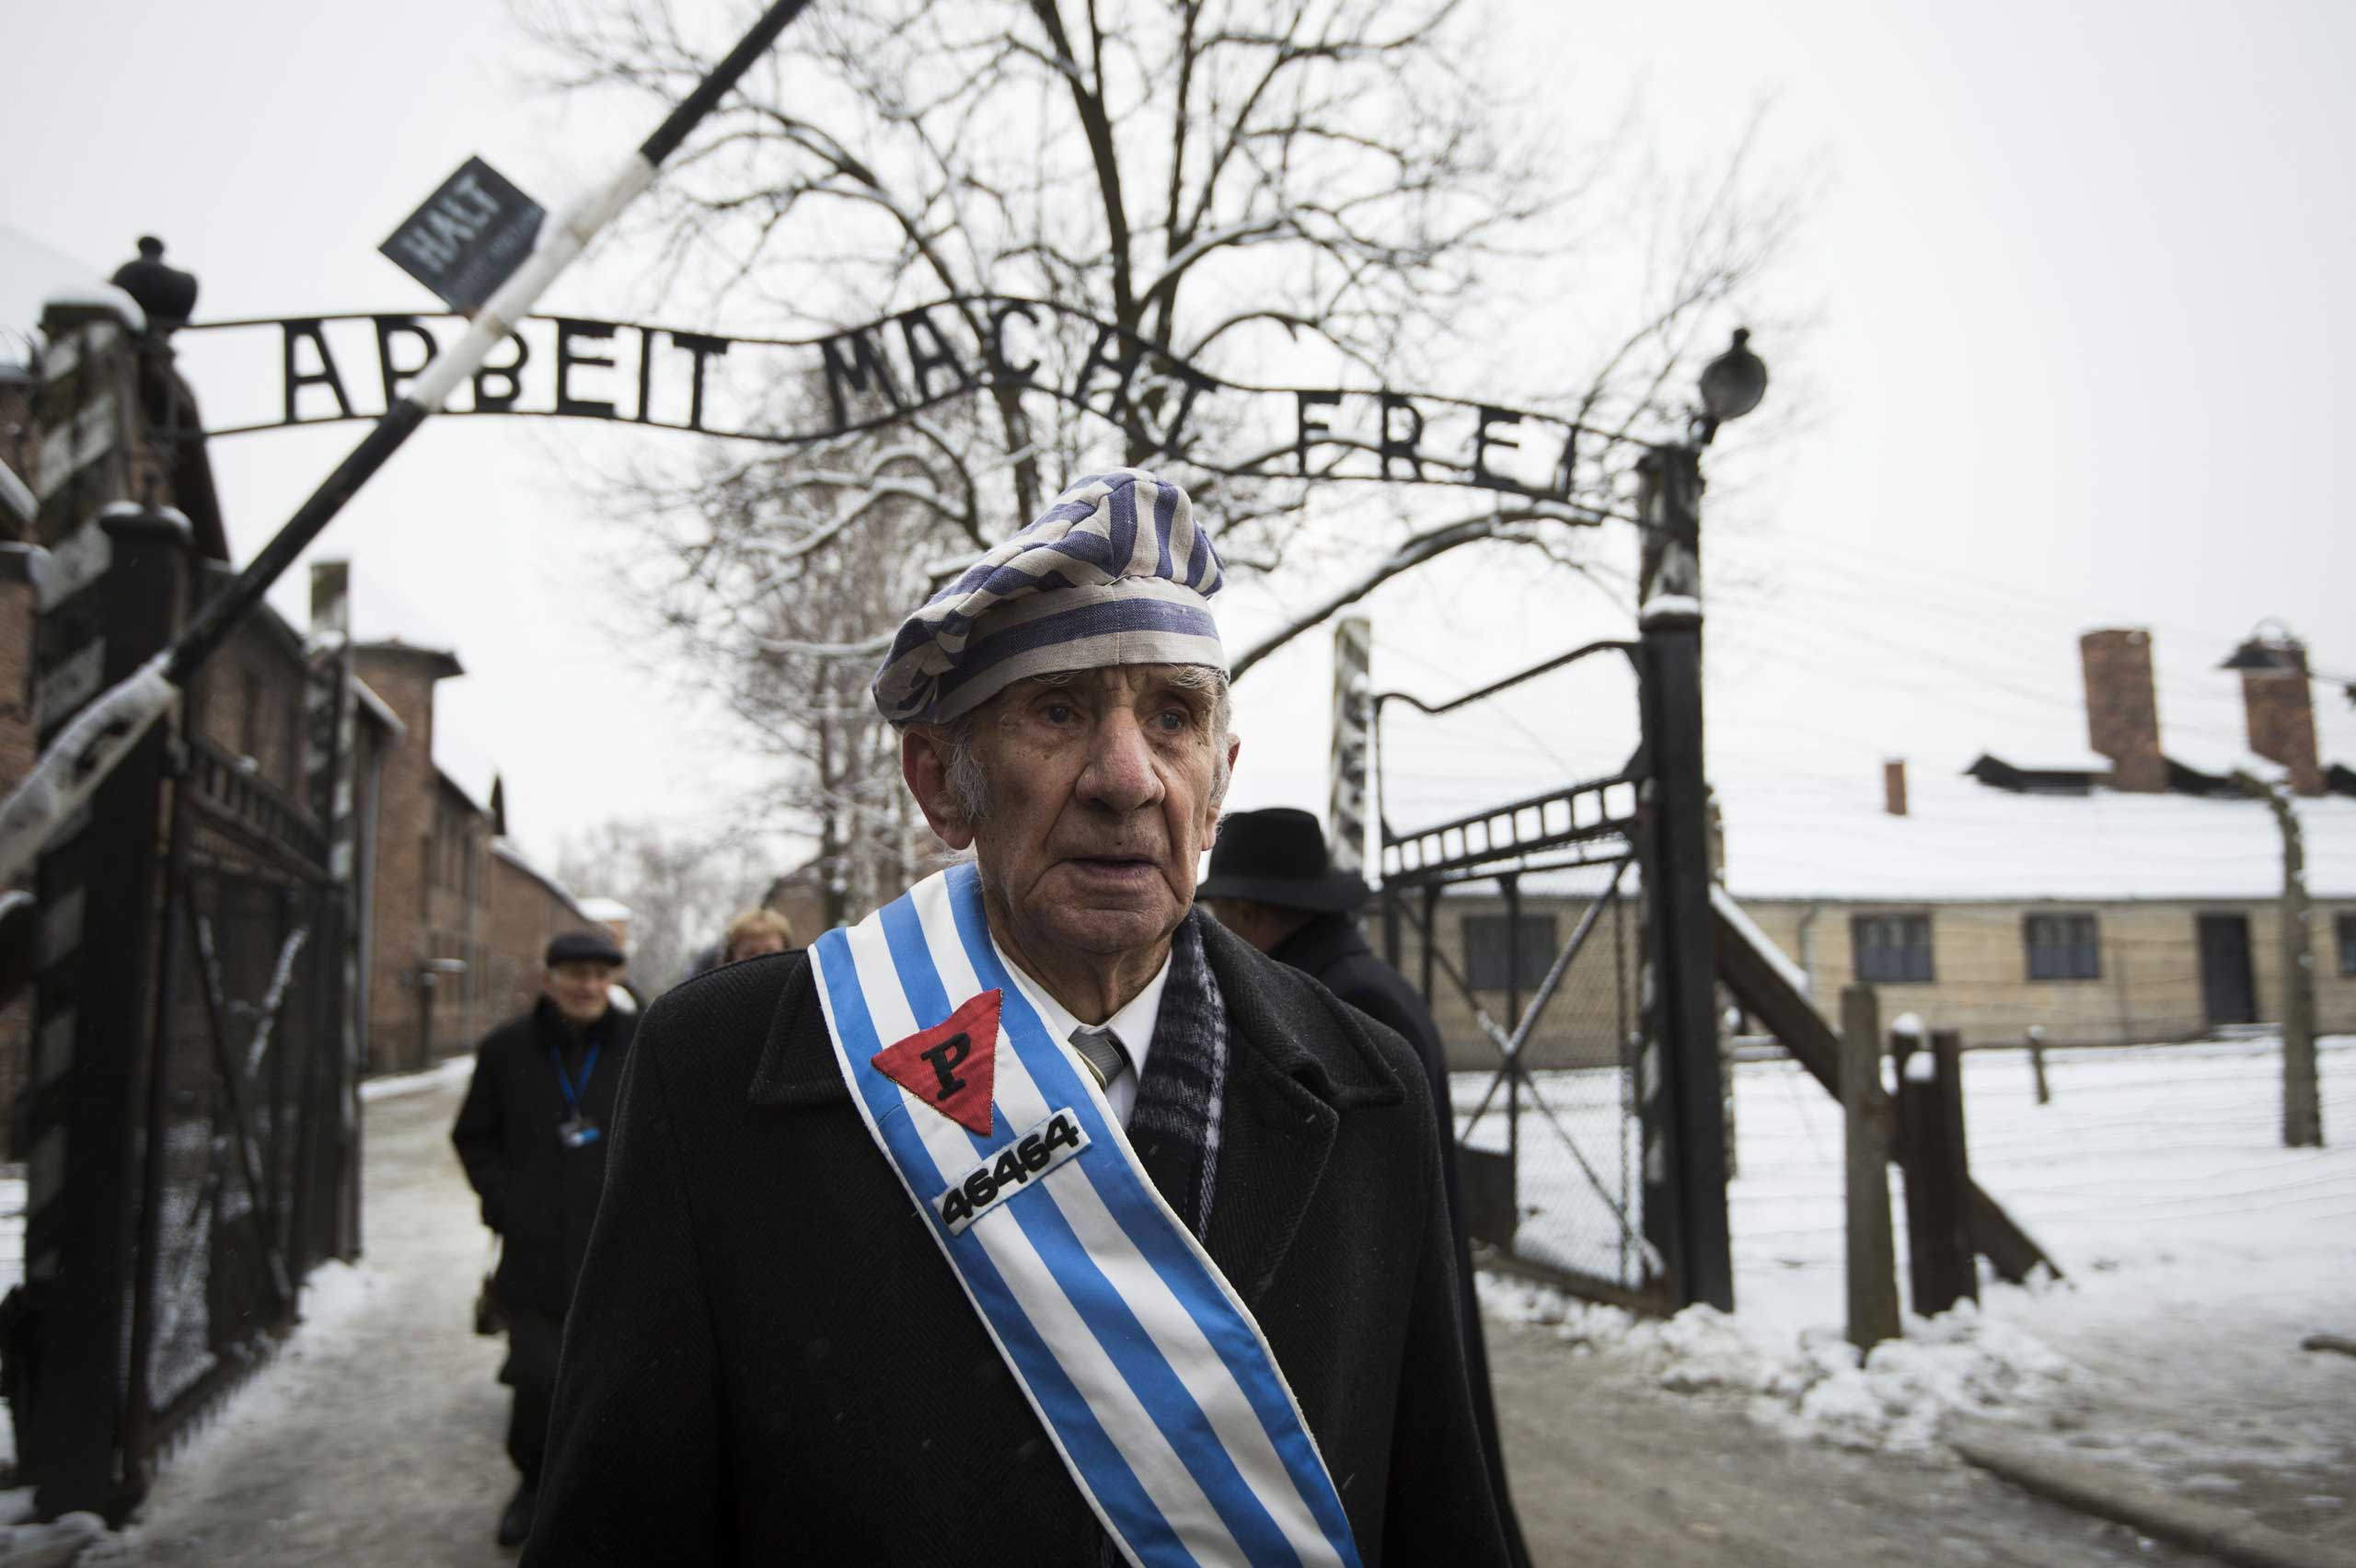 Auschwitz survivor Miroslaw Celka walks out the gate with the sign saying  Work makes you free  after paying tribute to fallen comrades at the  death wall  execution spot in the former Auschwitz concentration camp in Oswiecim, Poland, on the 70th anniversary of the liberation of the Nazi death camp on Jan. 27, 2015.